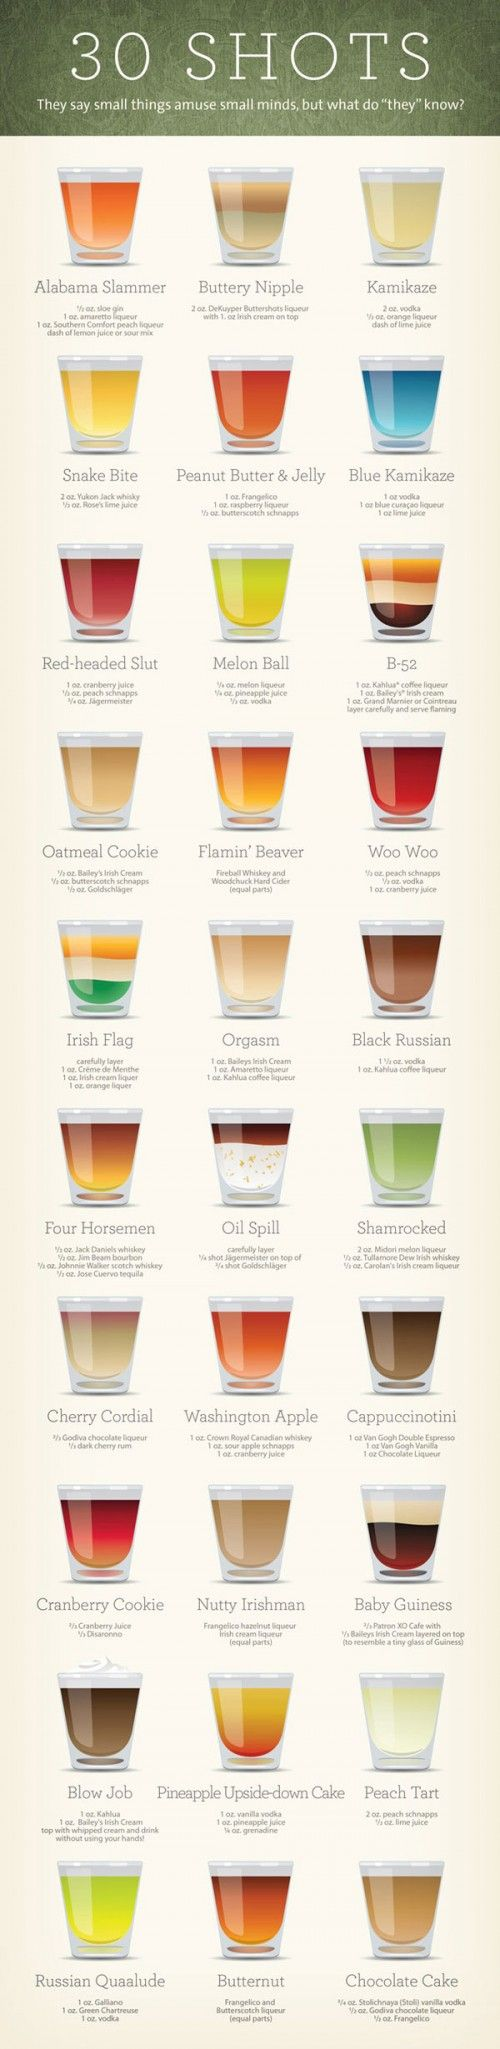 Shots are the bane of my life. They ruin my weekend. I'm well known amongst certain social circles for being unable to refuse a shot if one's offered. This has led to some horrendous hangovers and very messy states. This infographic looks at a few of the more exotic ones on offer. Surprisingly there's a good few on here that I've never had before. I might have to diversify next weekend! From Visual.ly.